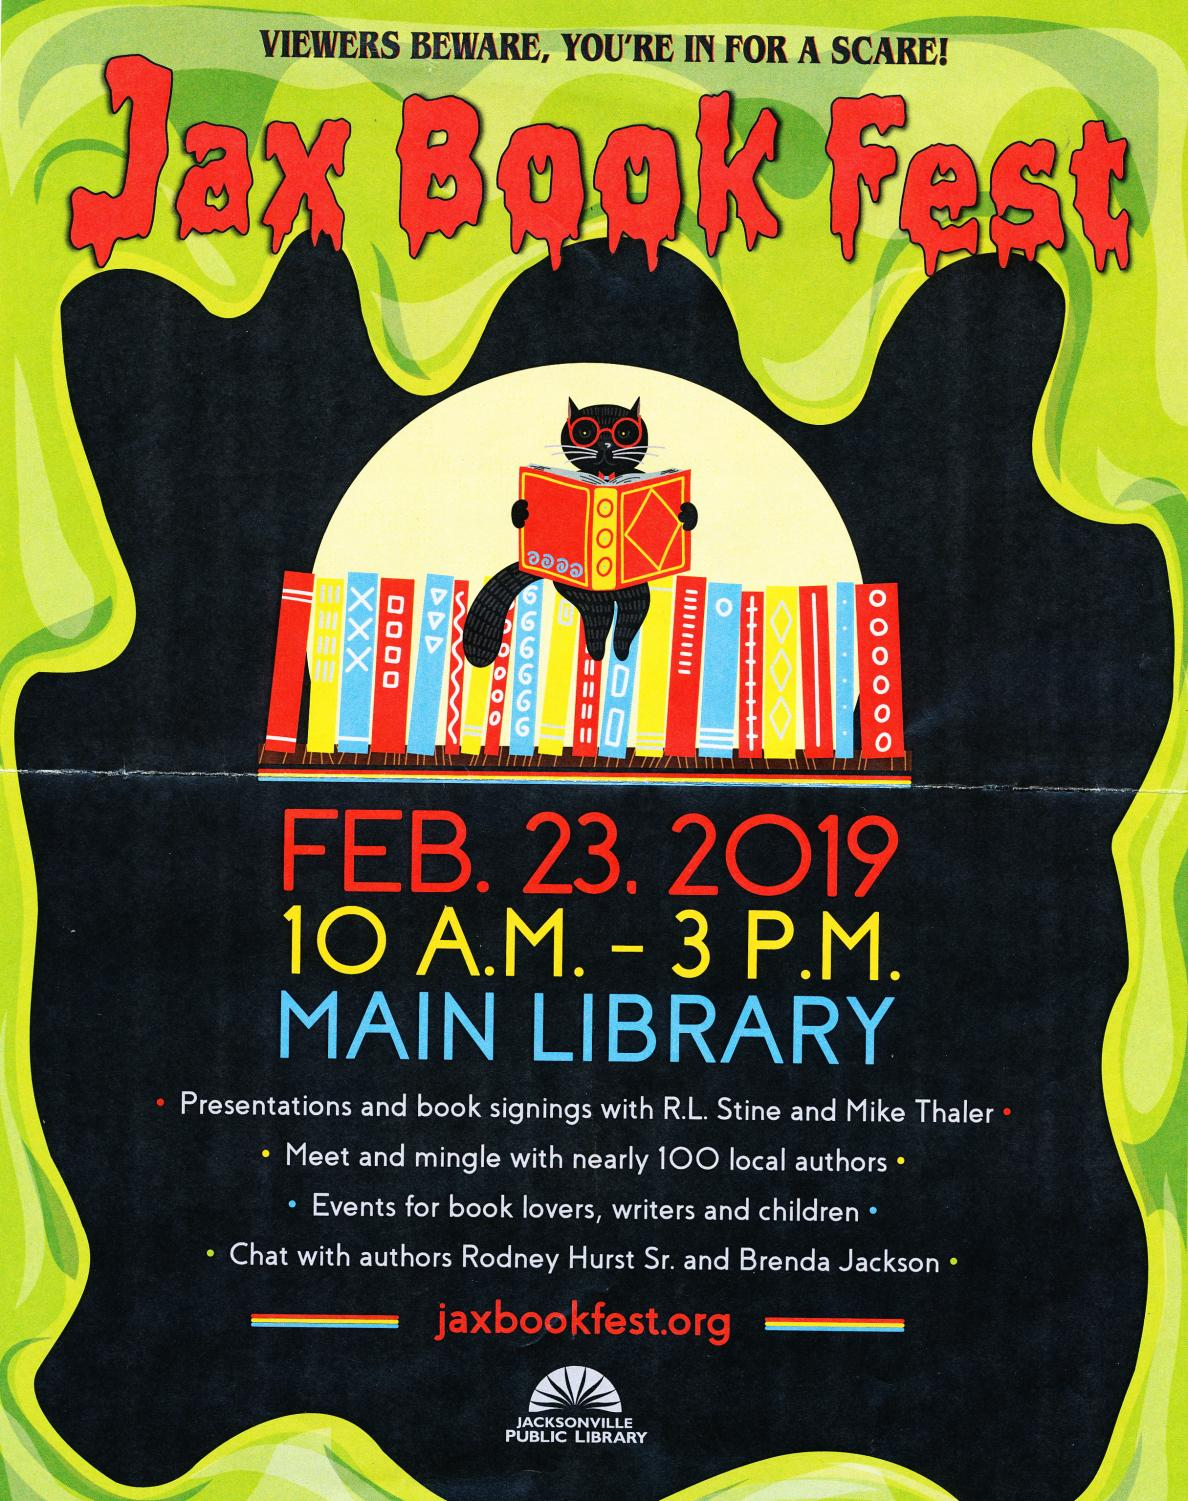 Flyer for the Jax Book Fest, the event with take place at the Jacksonville Public Library